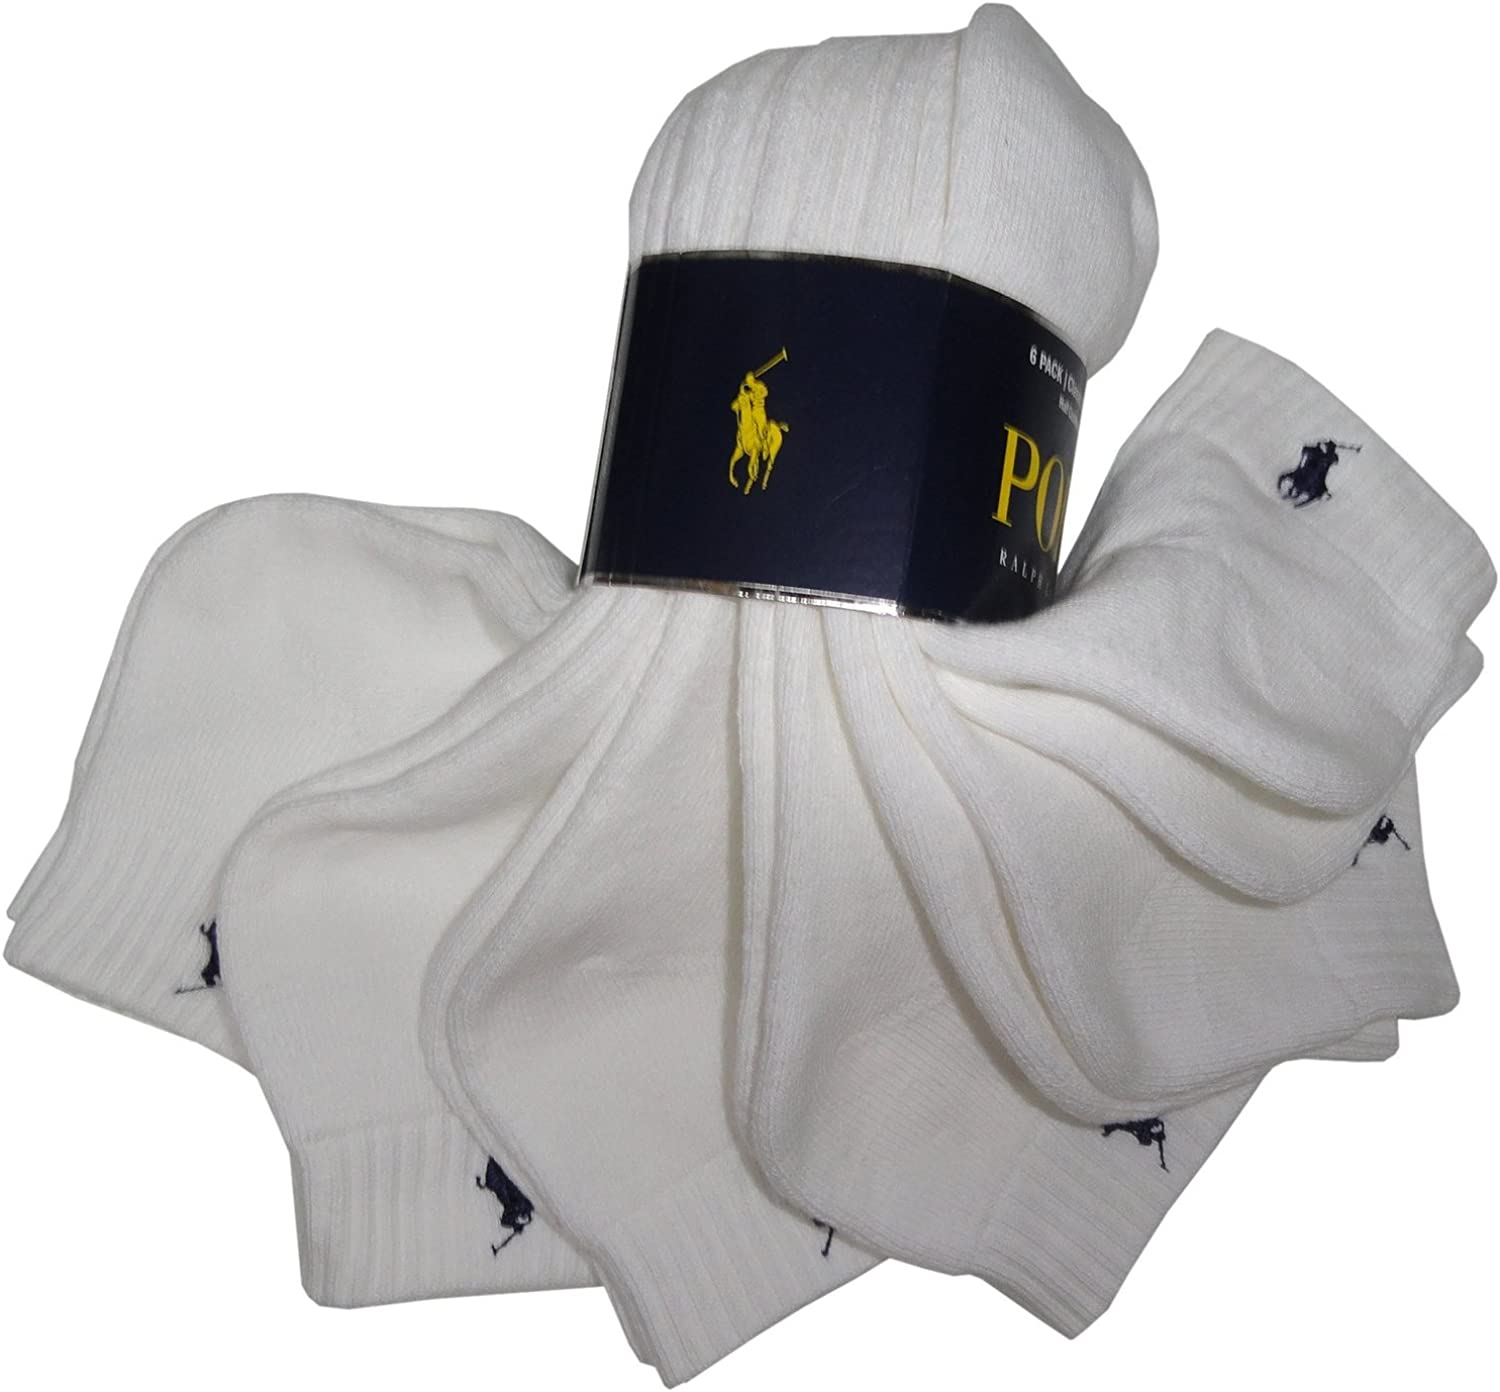 Polo Ralph Lauren Mens Classic Socks Athletic White Sport 5 ☆ very popular Cotton Special sale item